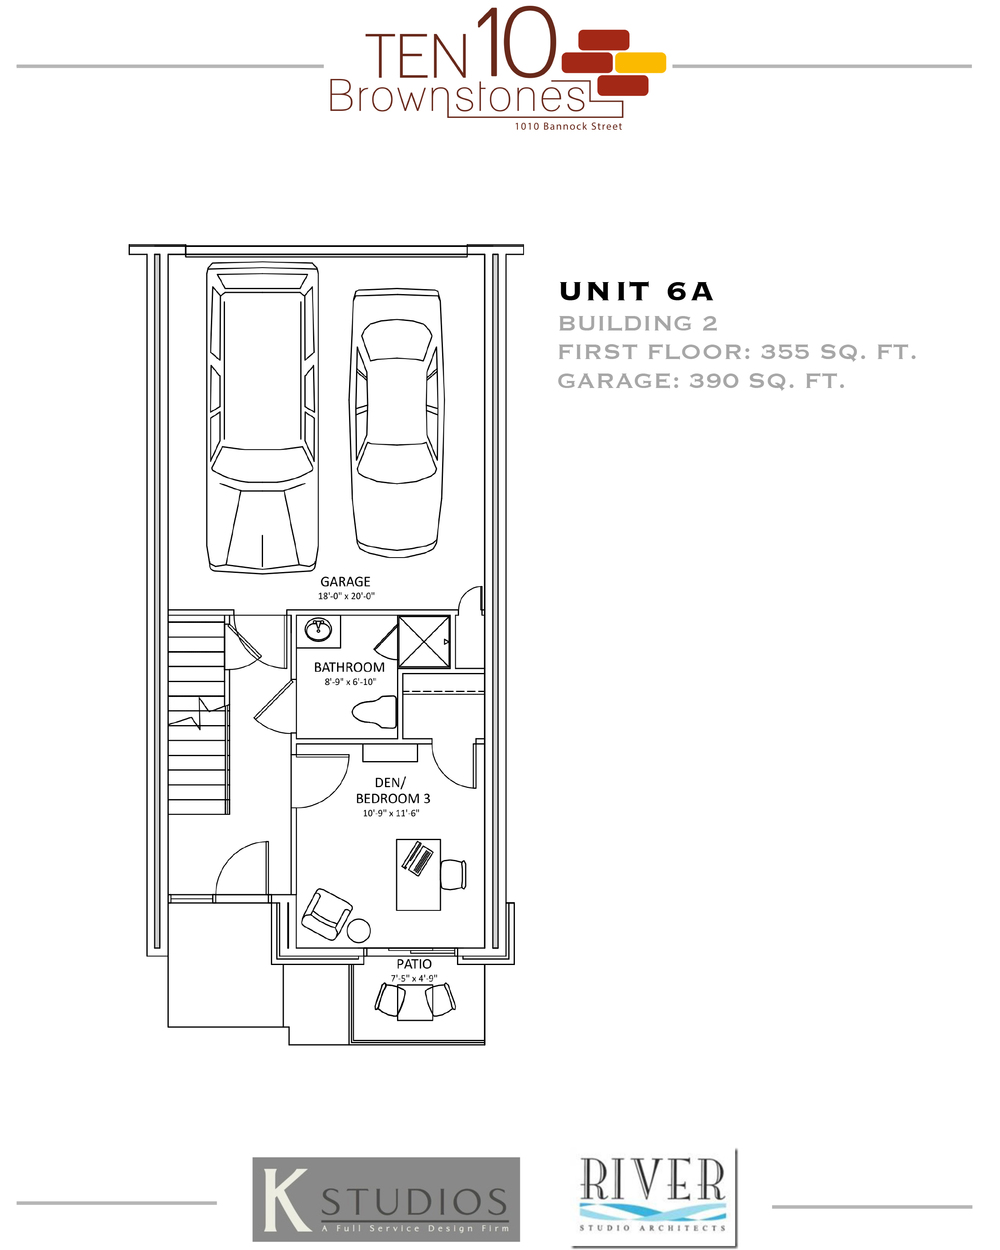 Click image to view & download Unit 6A floor plan